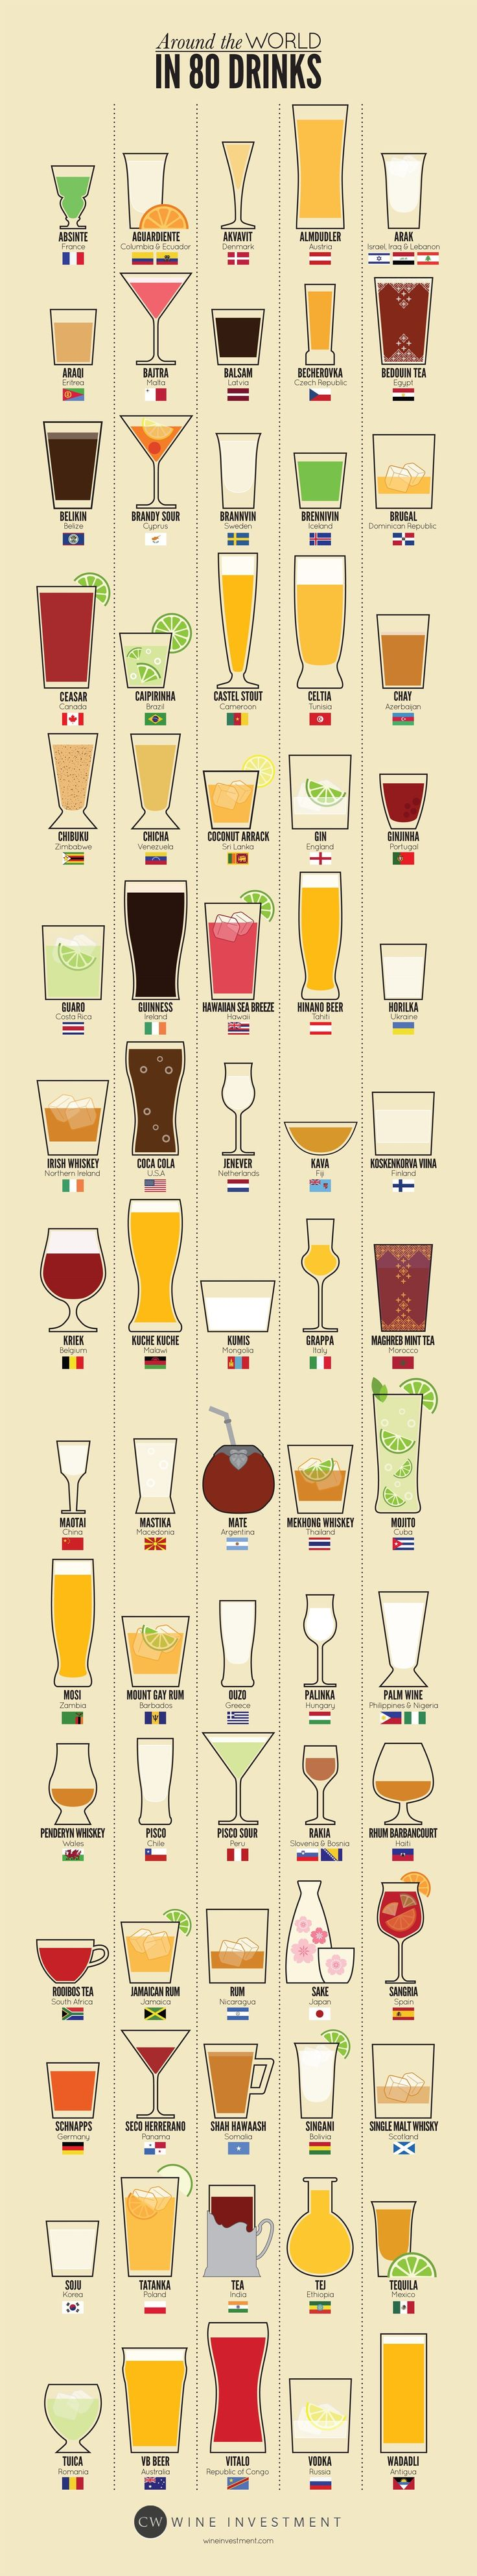 AROUND THE WORLD IN 80 DRINKS - #feeldesain  http://www.feeldesain.com/around-the-world-in-80-drinks.html